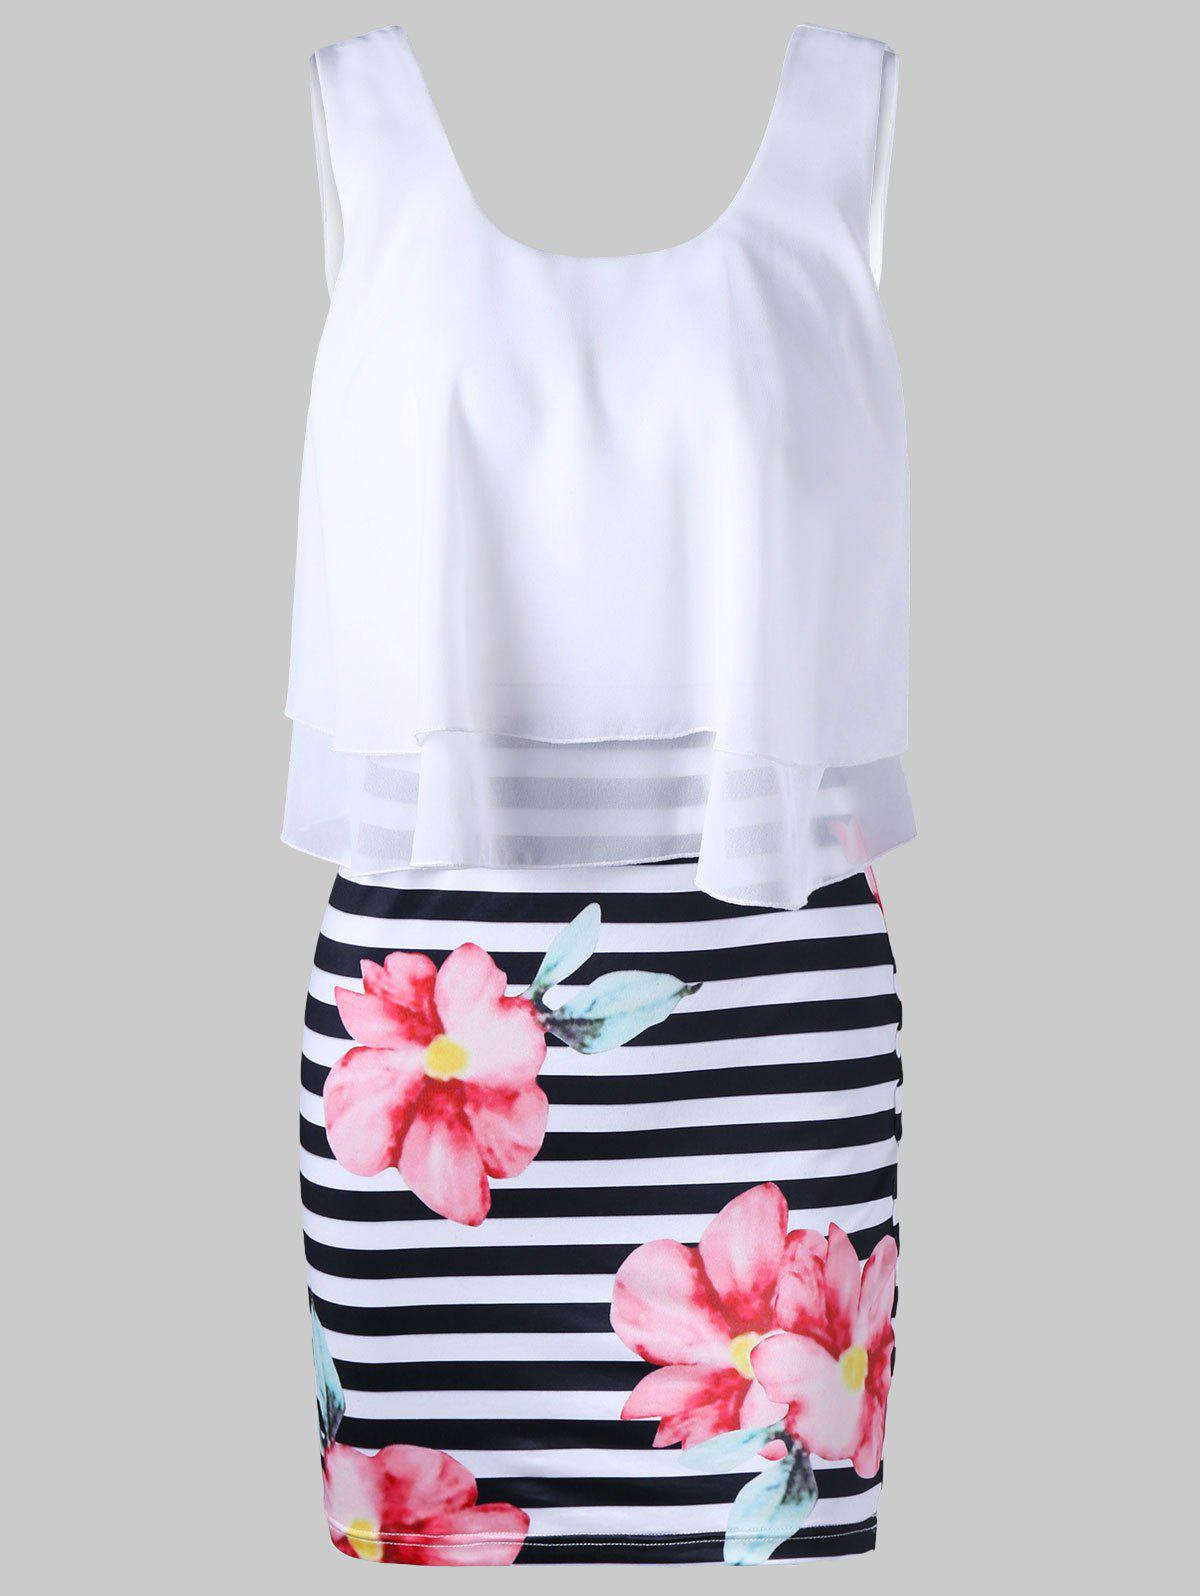 Outfits Floral with Striped Tight Popover Dress